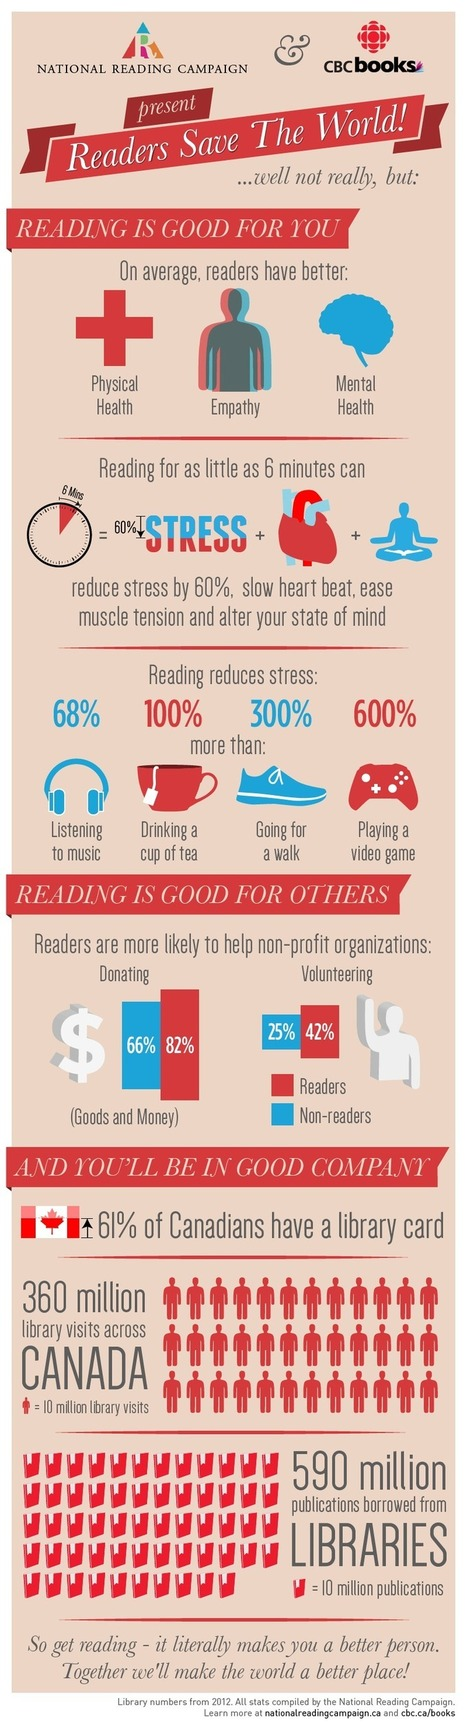 Infographic: Reading Can be Good for Your Health - The Digital Reader | Bibliotecas Escolares & boas companhias... | Scoop.it